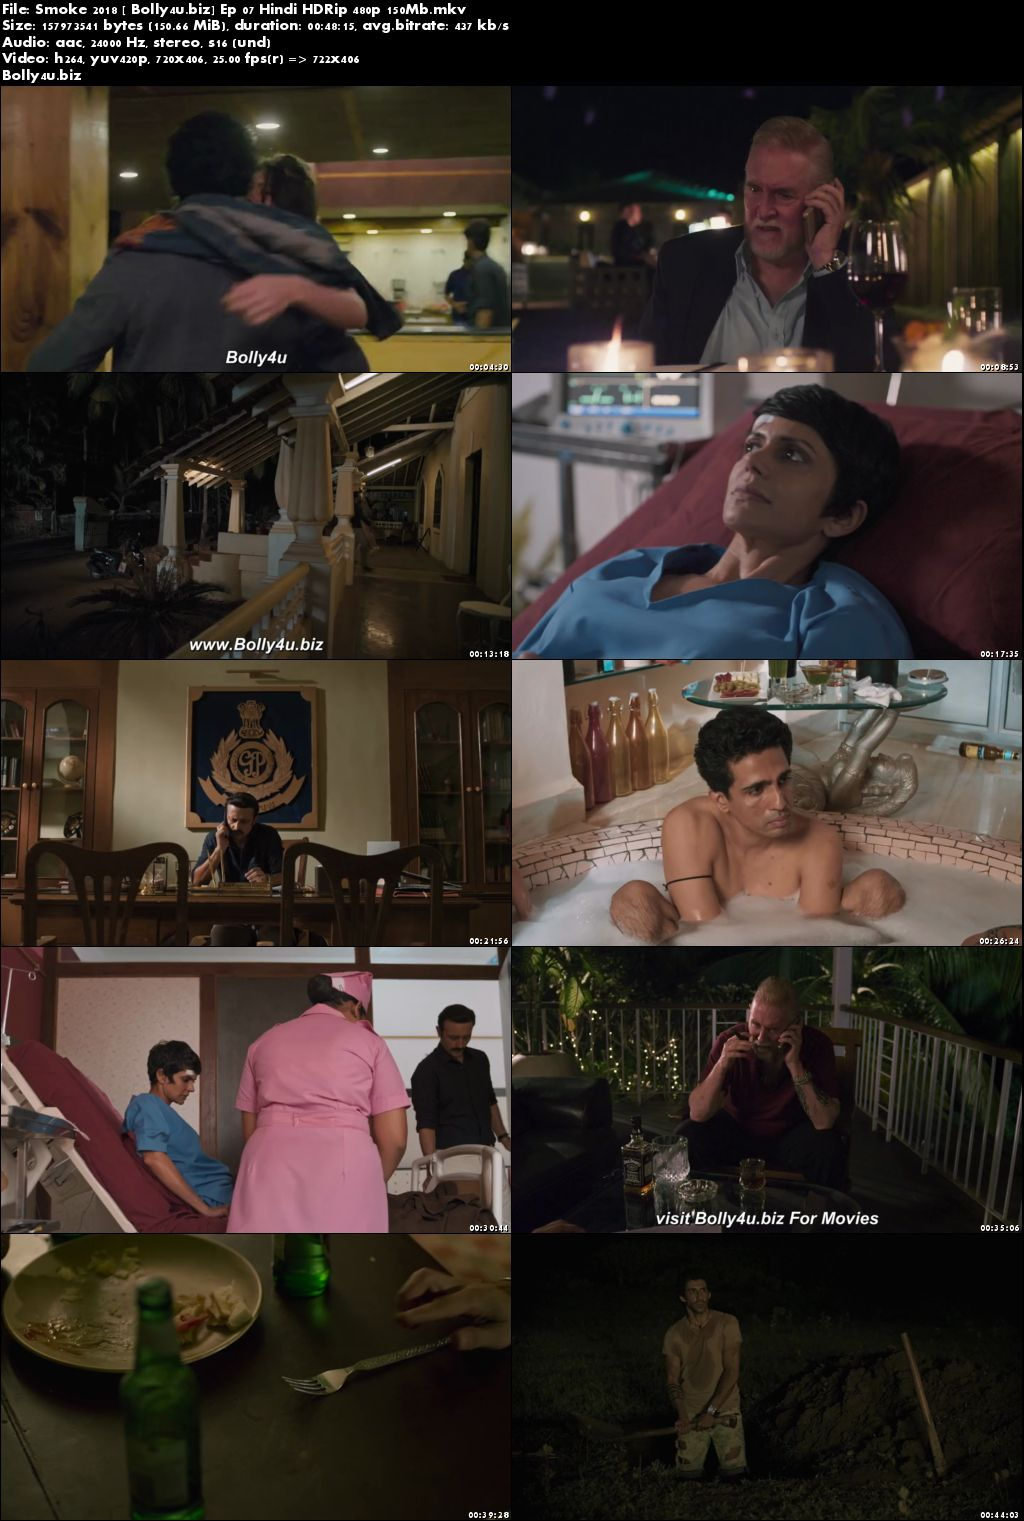 Smoke 2018 HDRip 150MB Episode 07 Hindi 480p Download